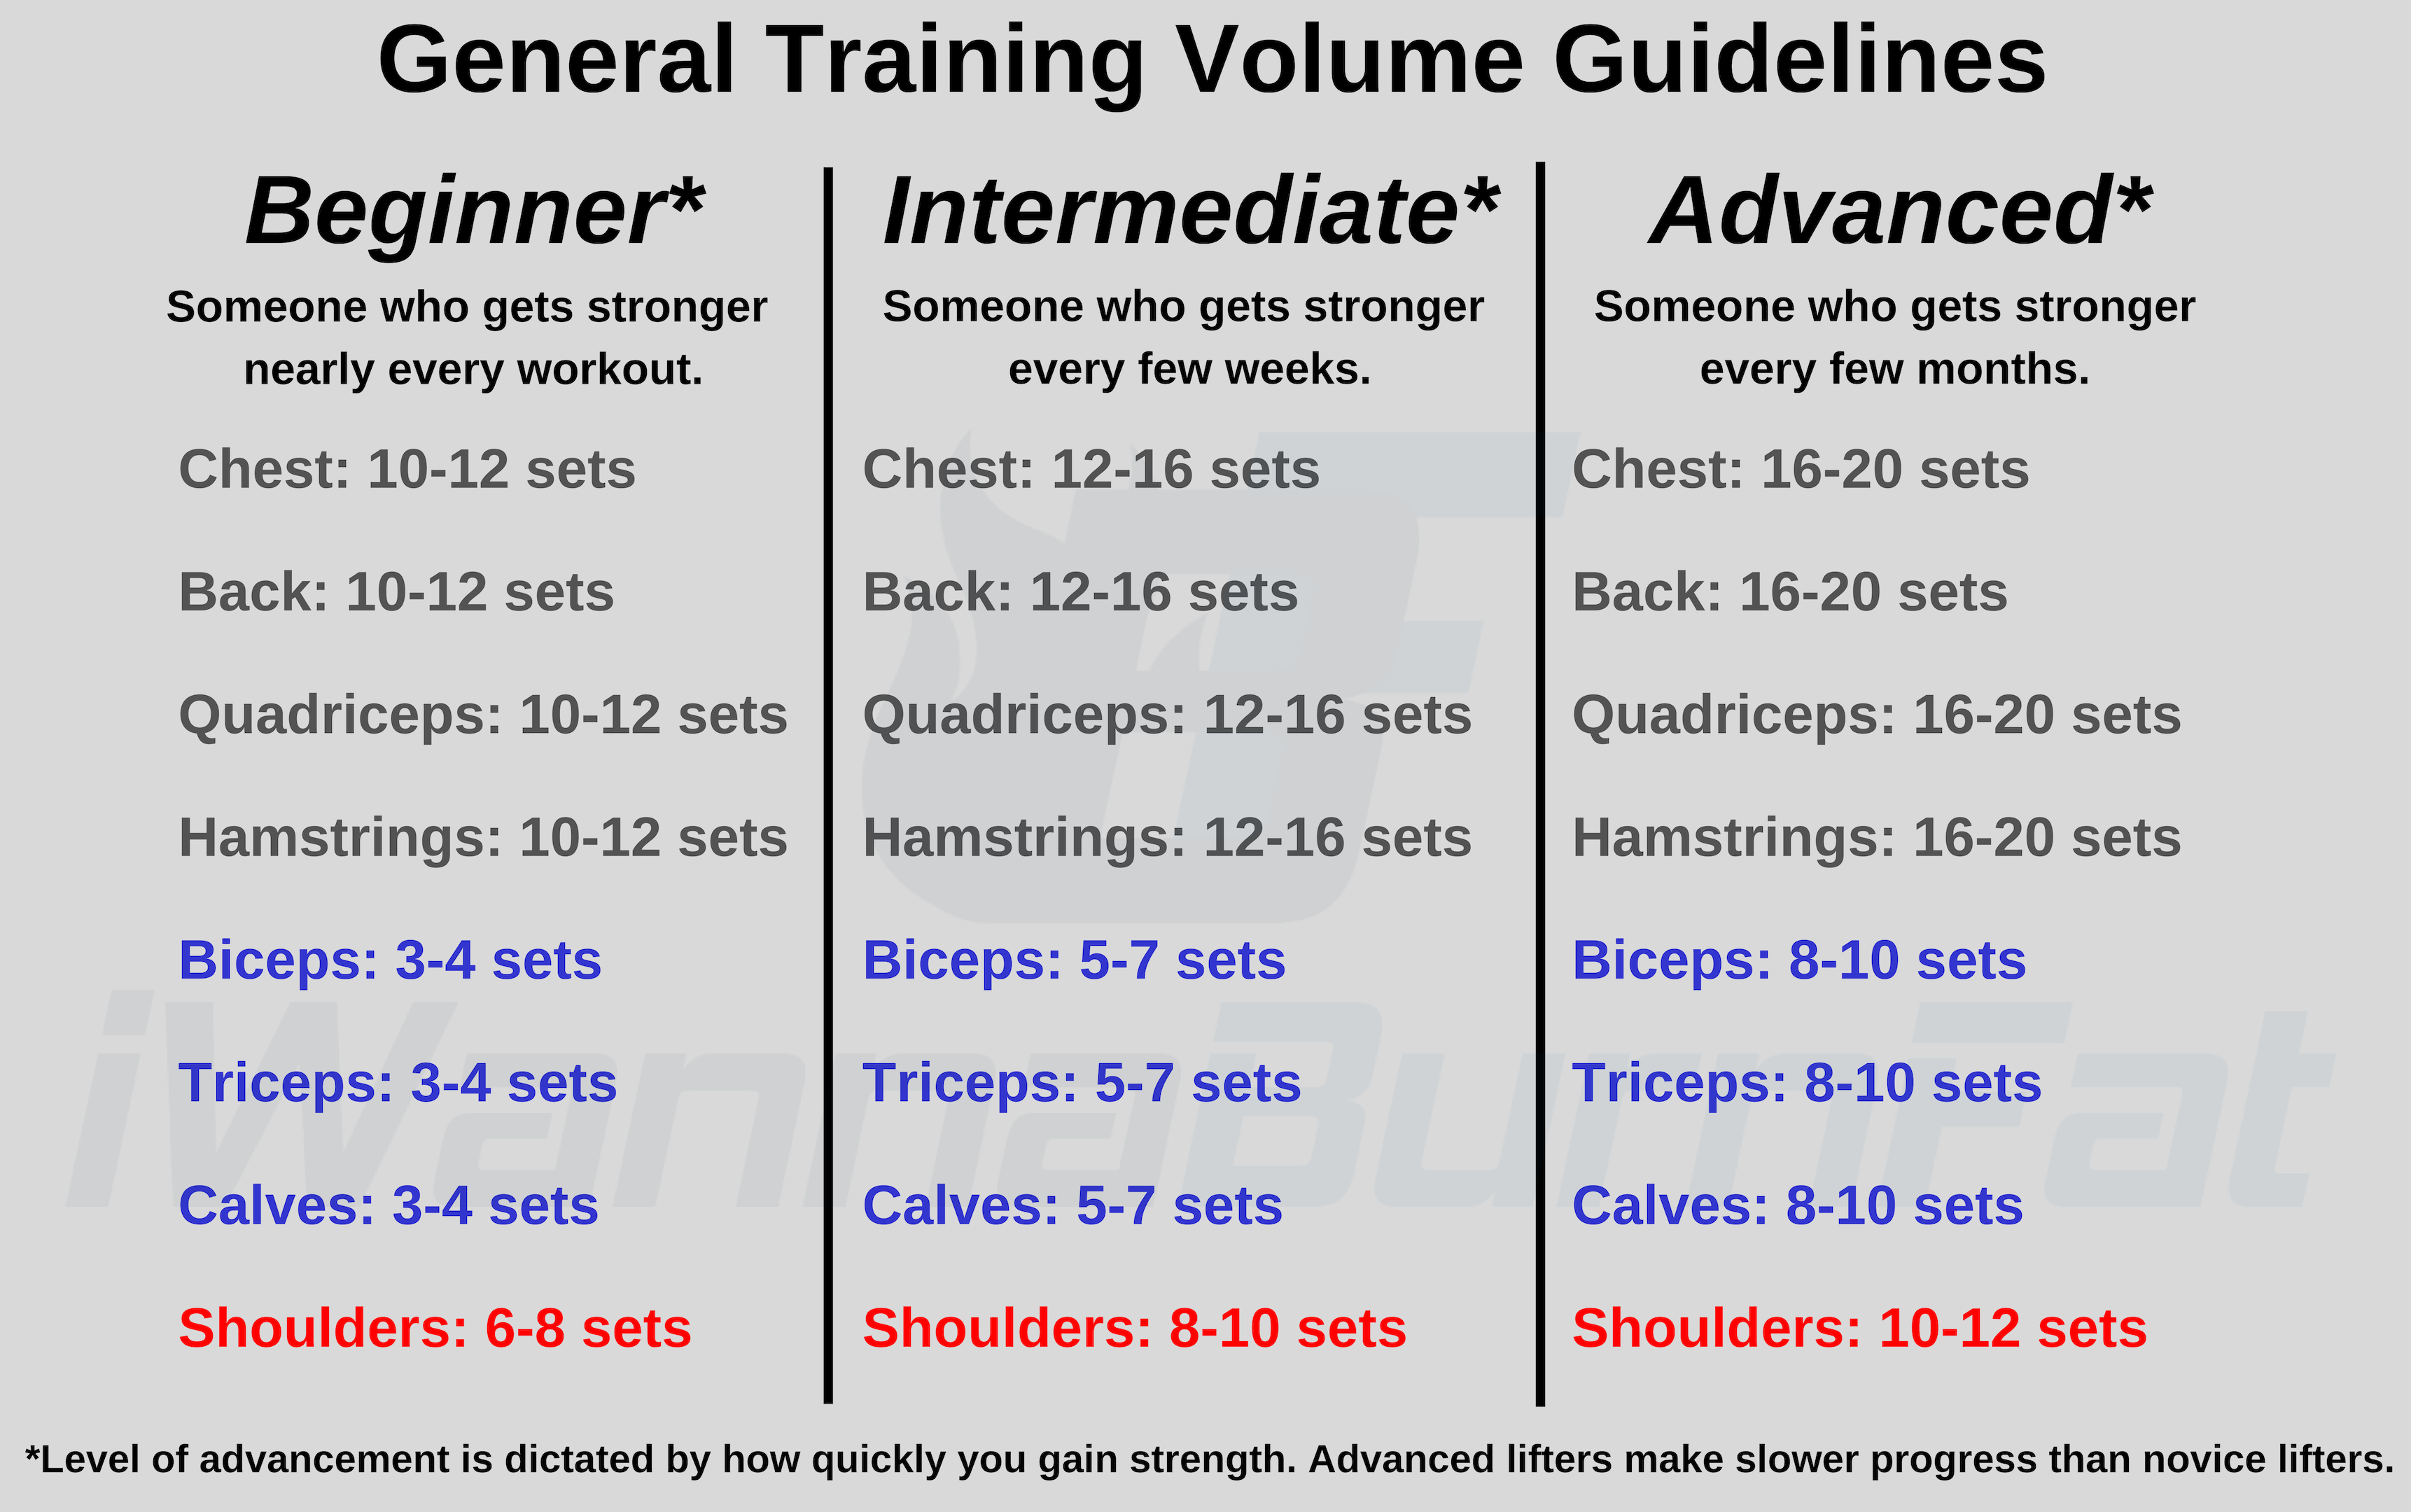 Training Volume: How many sets per muscle group? - I Wanna